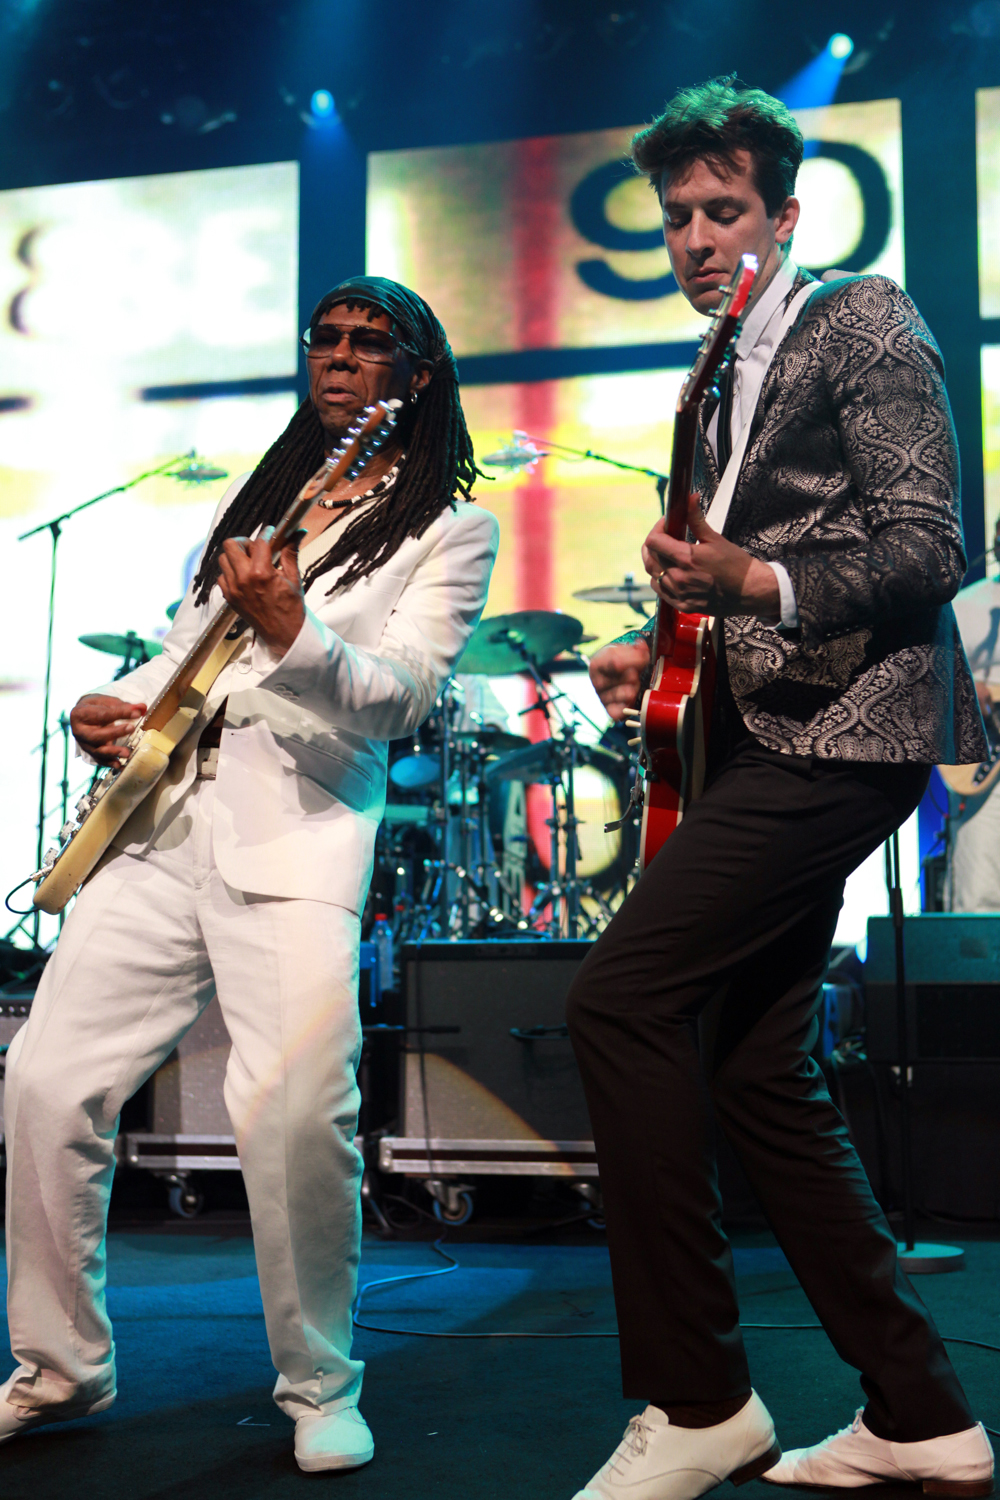 nile-rodgers-mark-ronson_01_montreux-jazz-festival-2012_IMG_5407.jpg